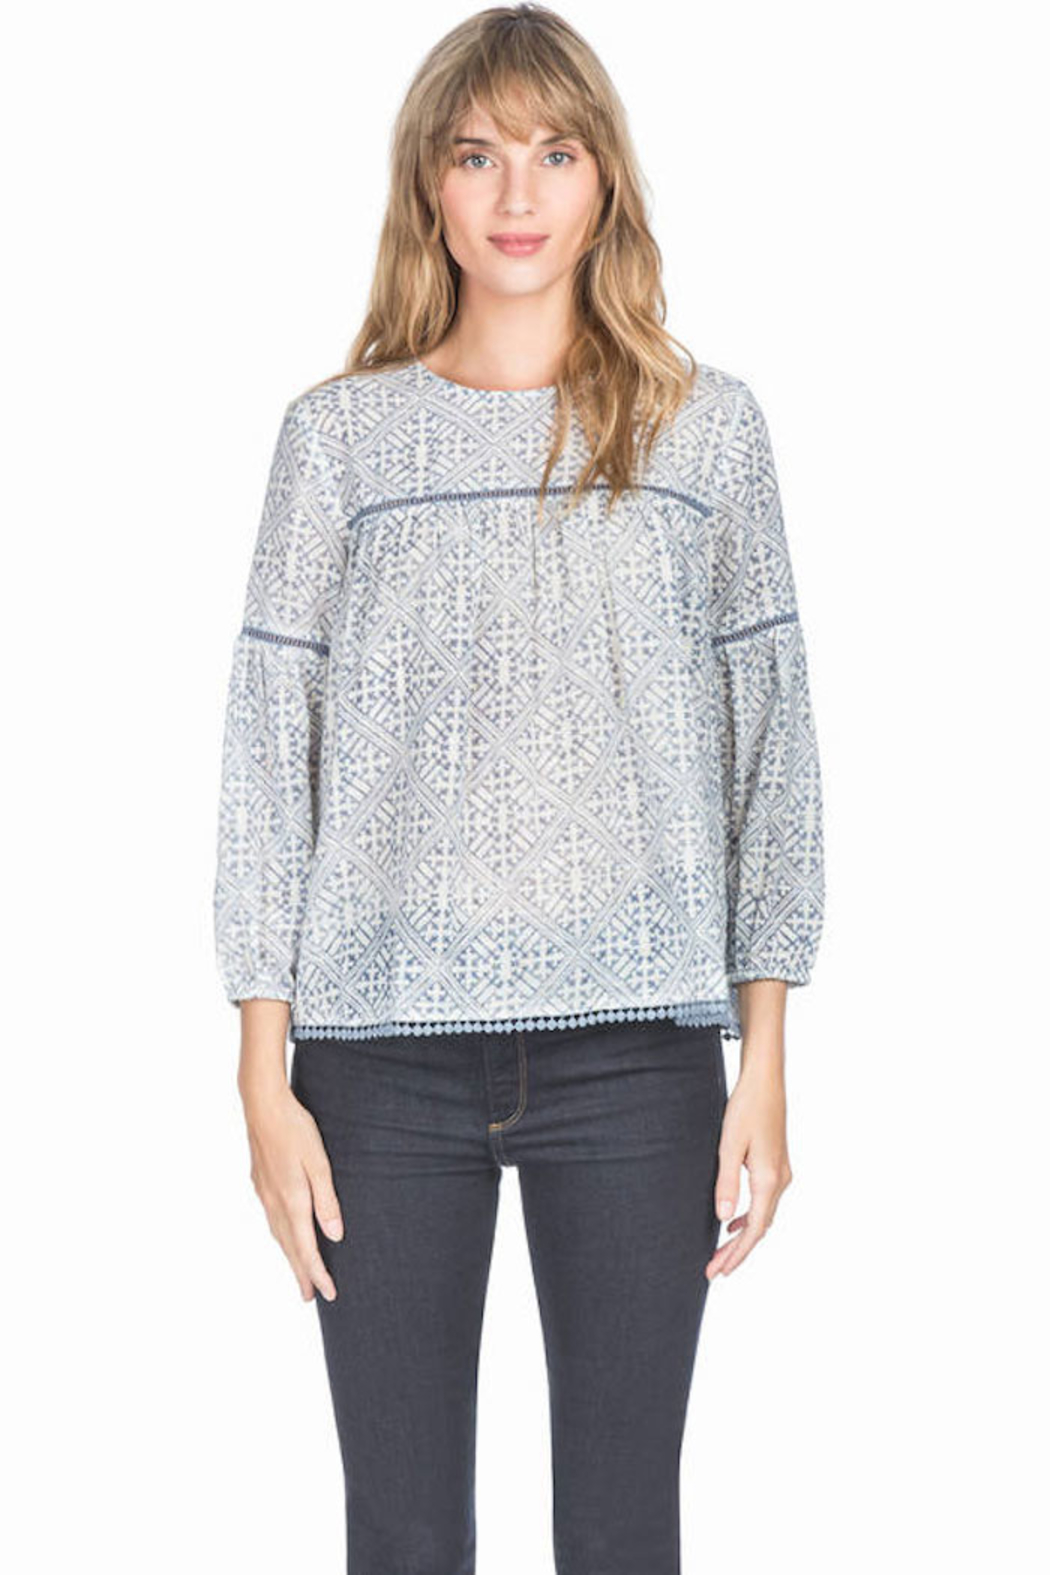 Lilla P Shirred Seam Blouse - Front Cropped Image